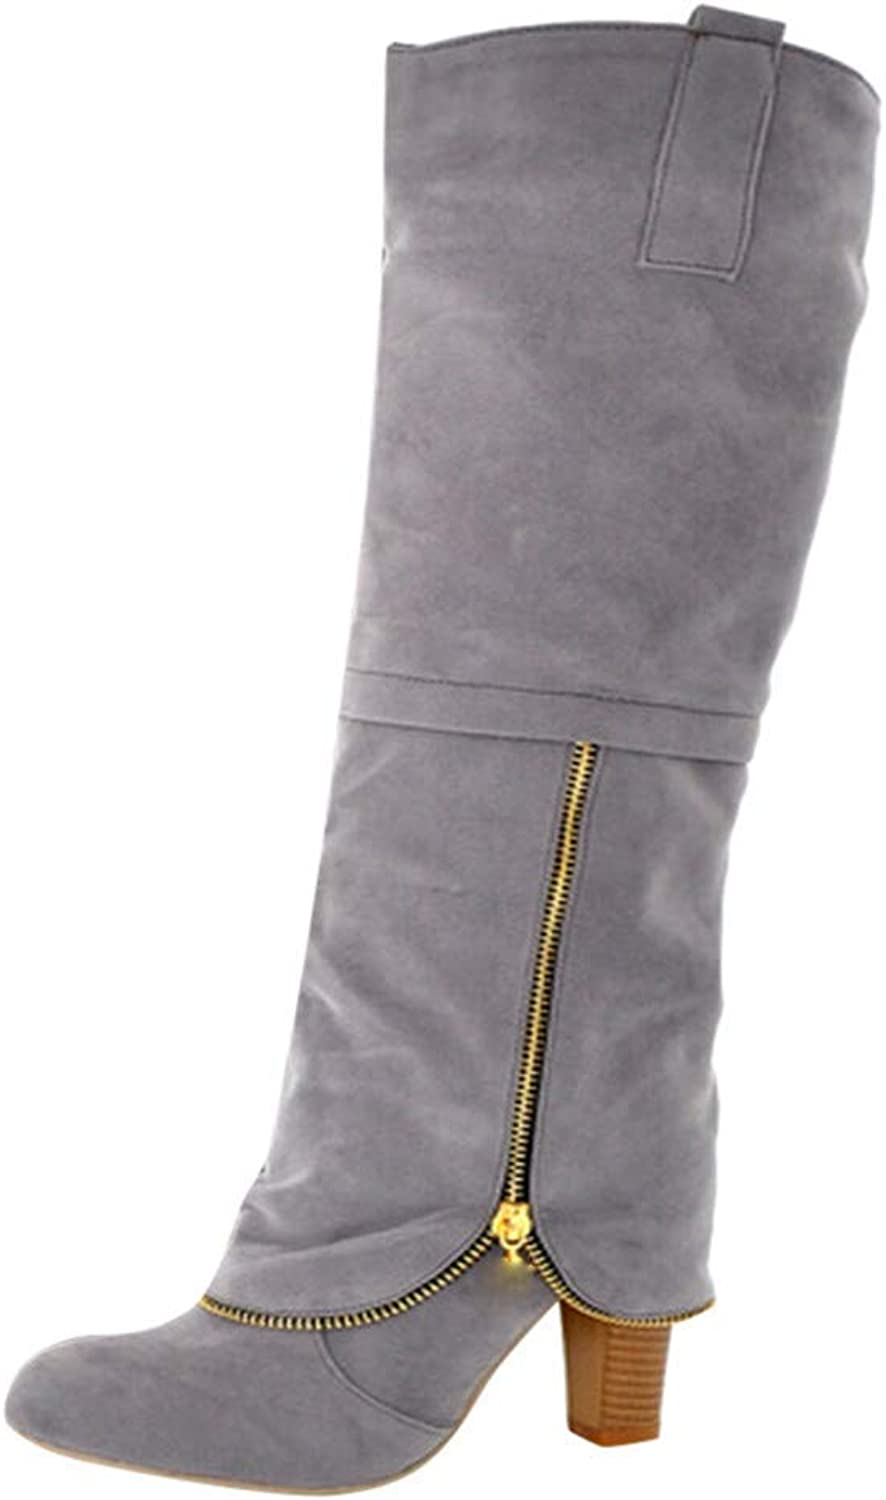 Women's Square High Heeled Knee High Boots Faux Leather Anti-Slip Round Toe